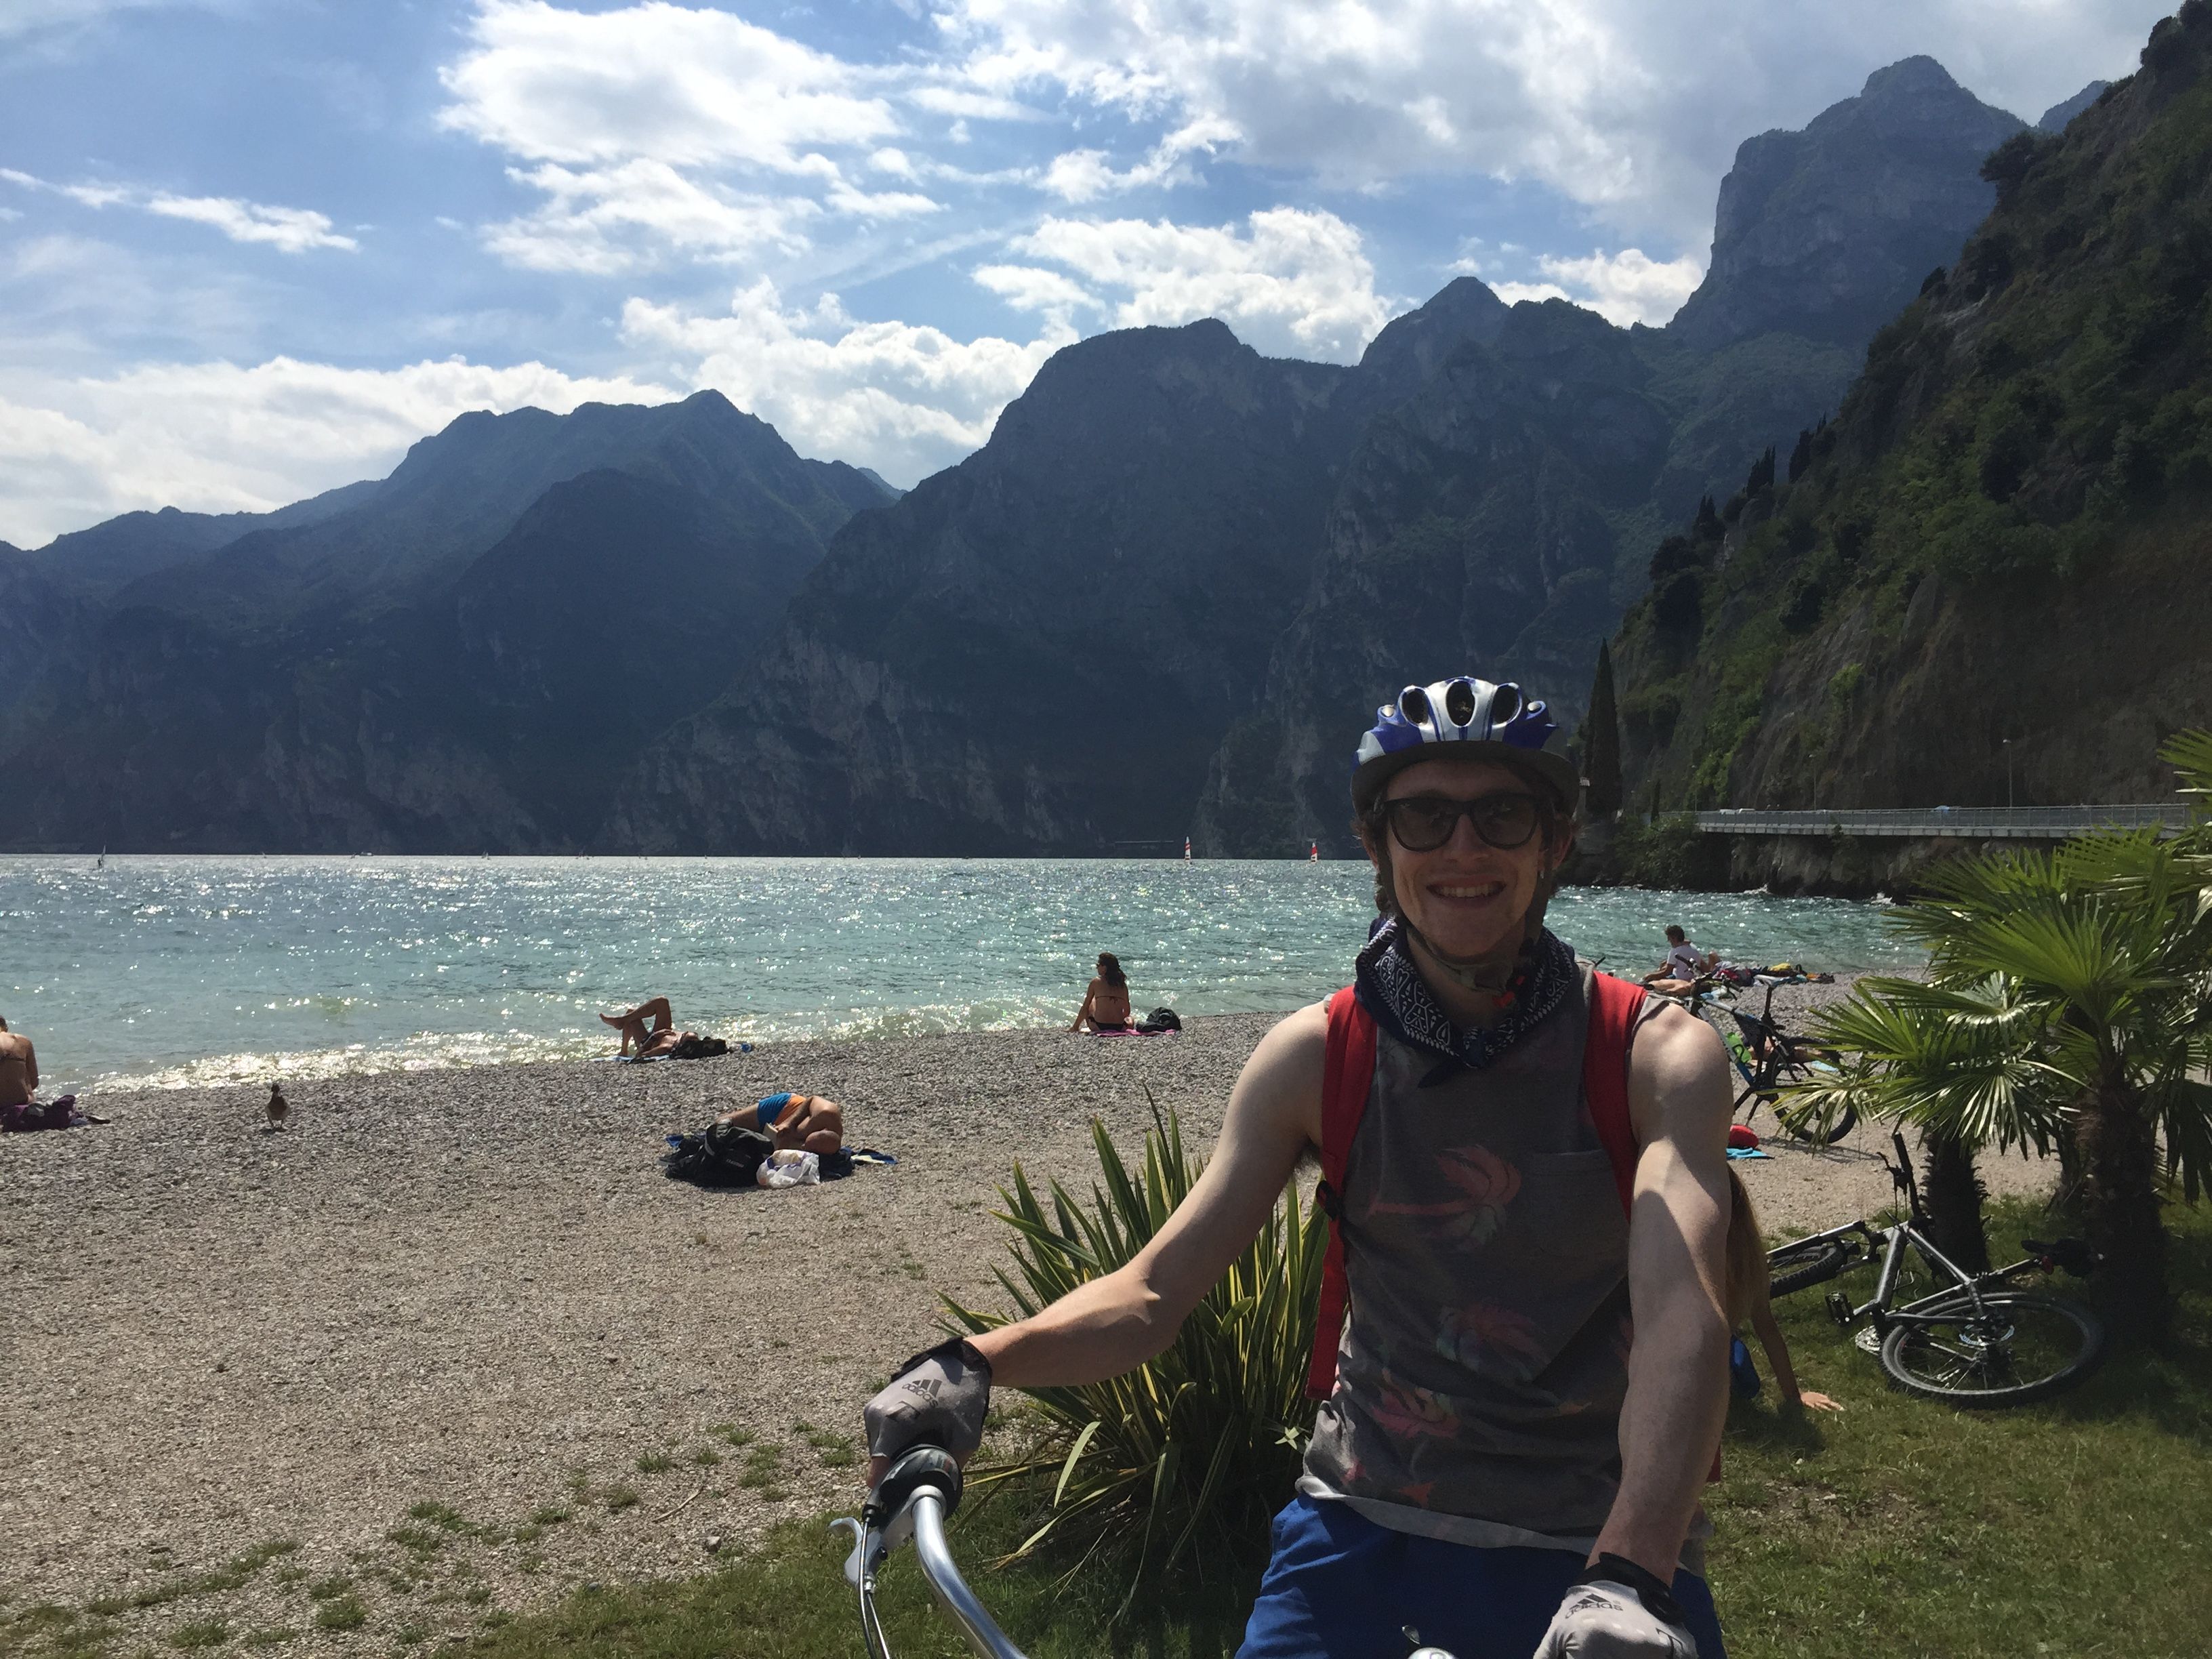 Cycling along the beach at Riva del Garda